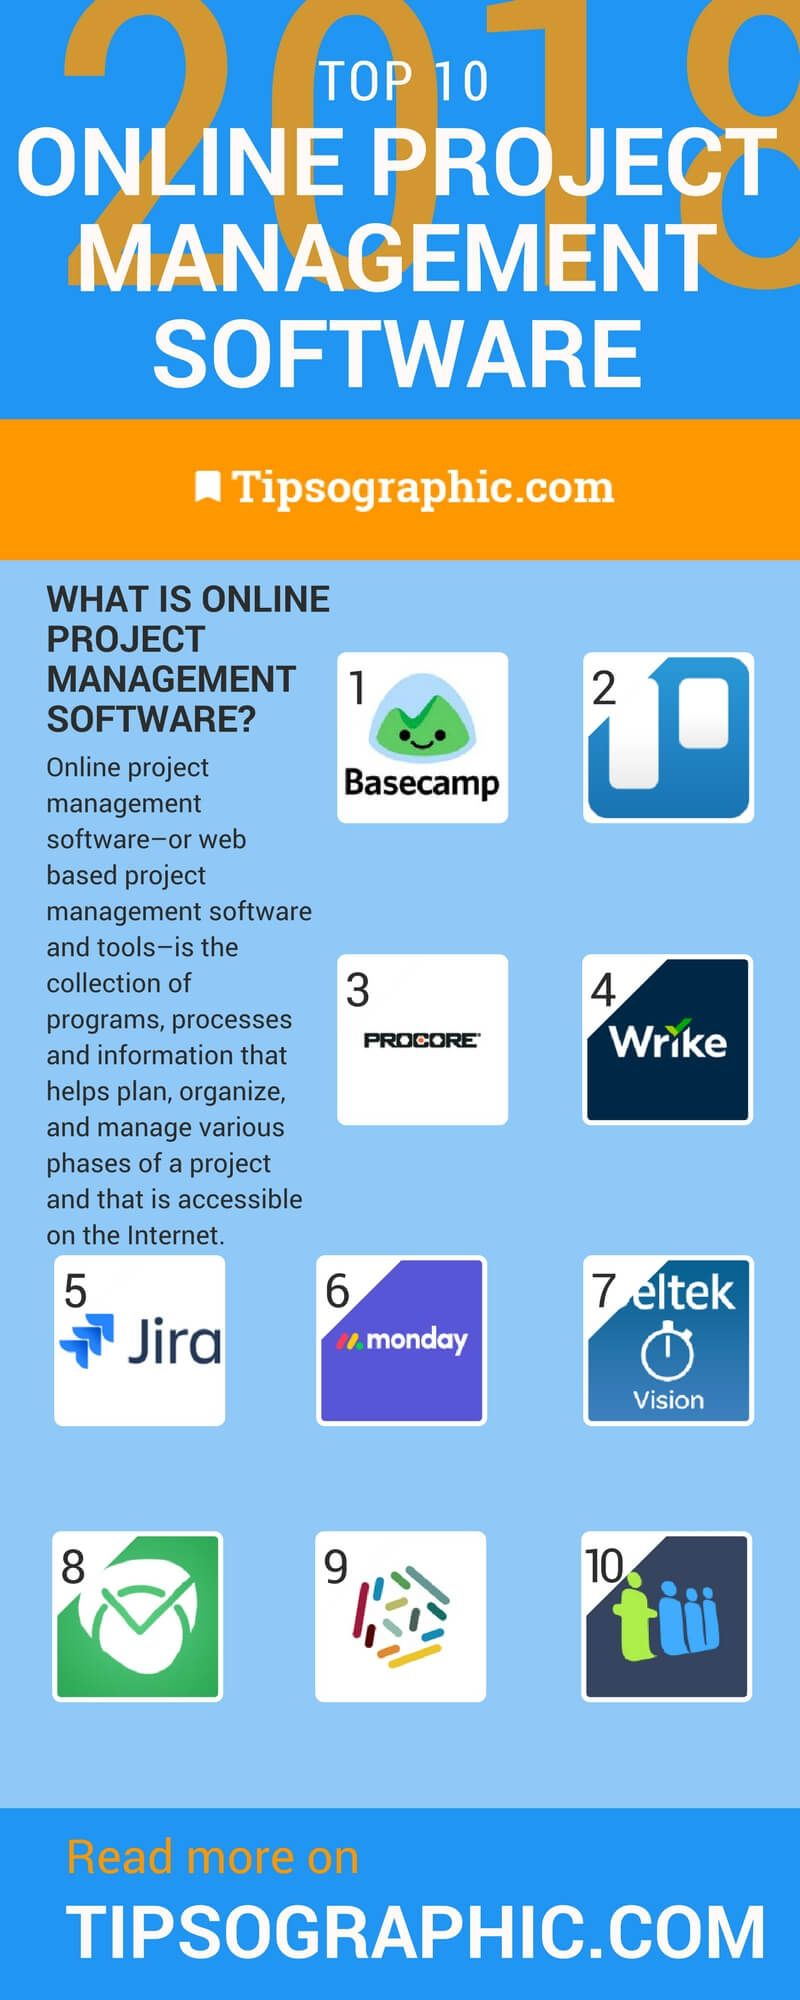 Image titled online project management software 2018 best systems